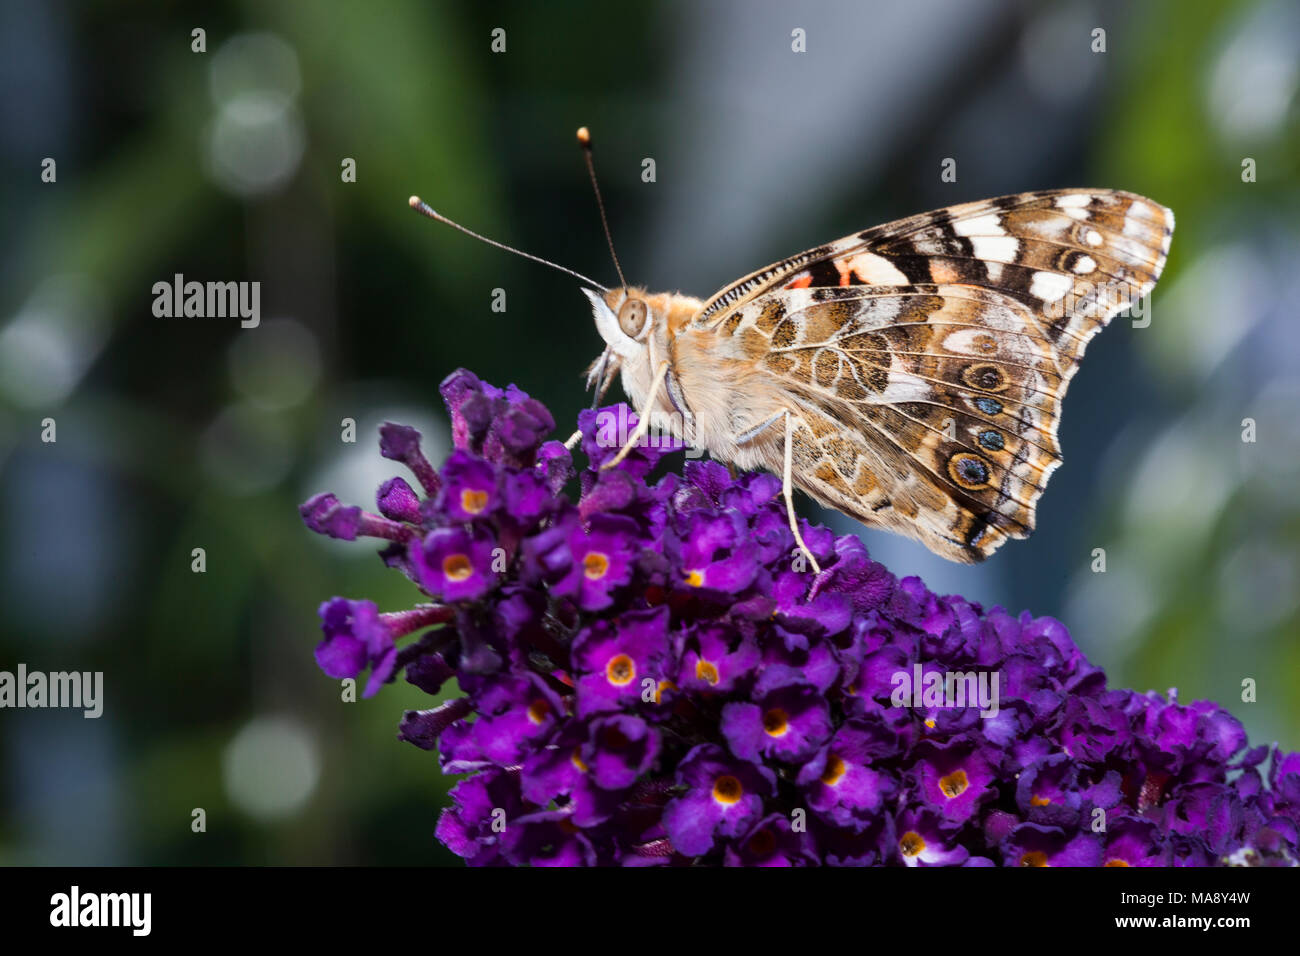 Butterfly at rest on buddleia - Stock Image